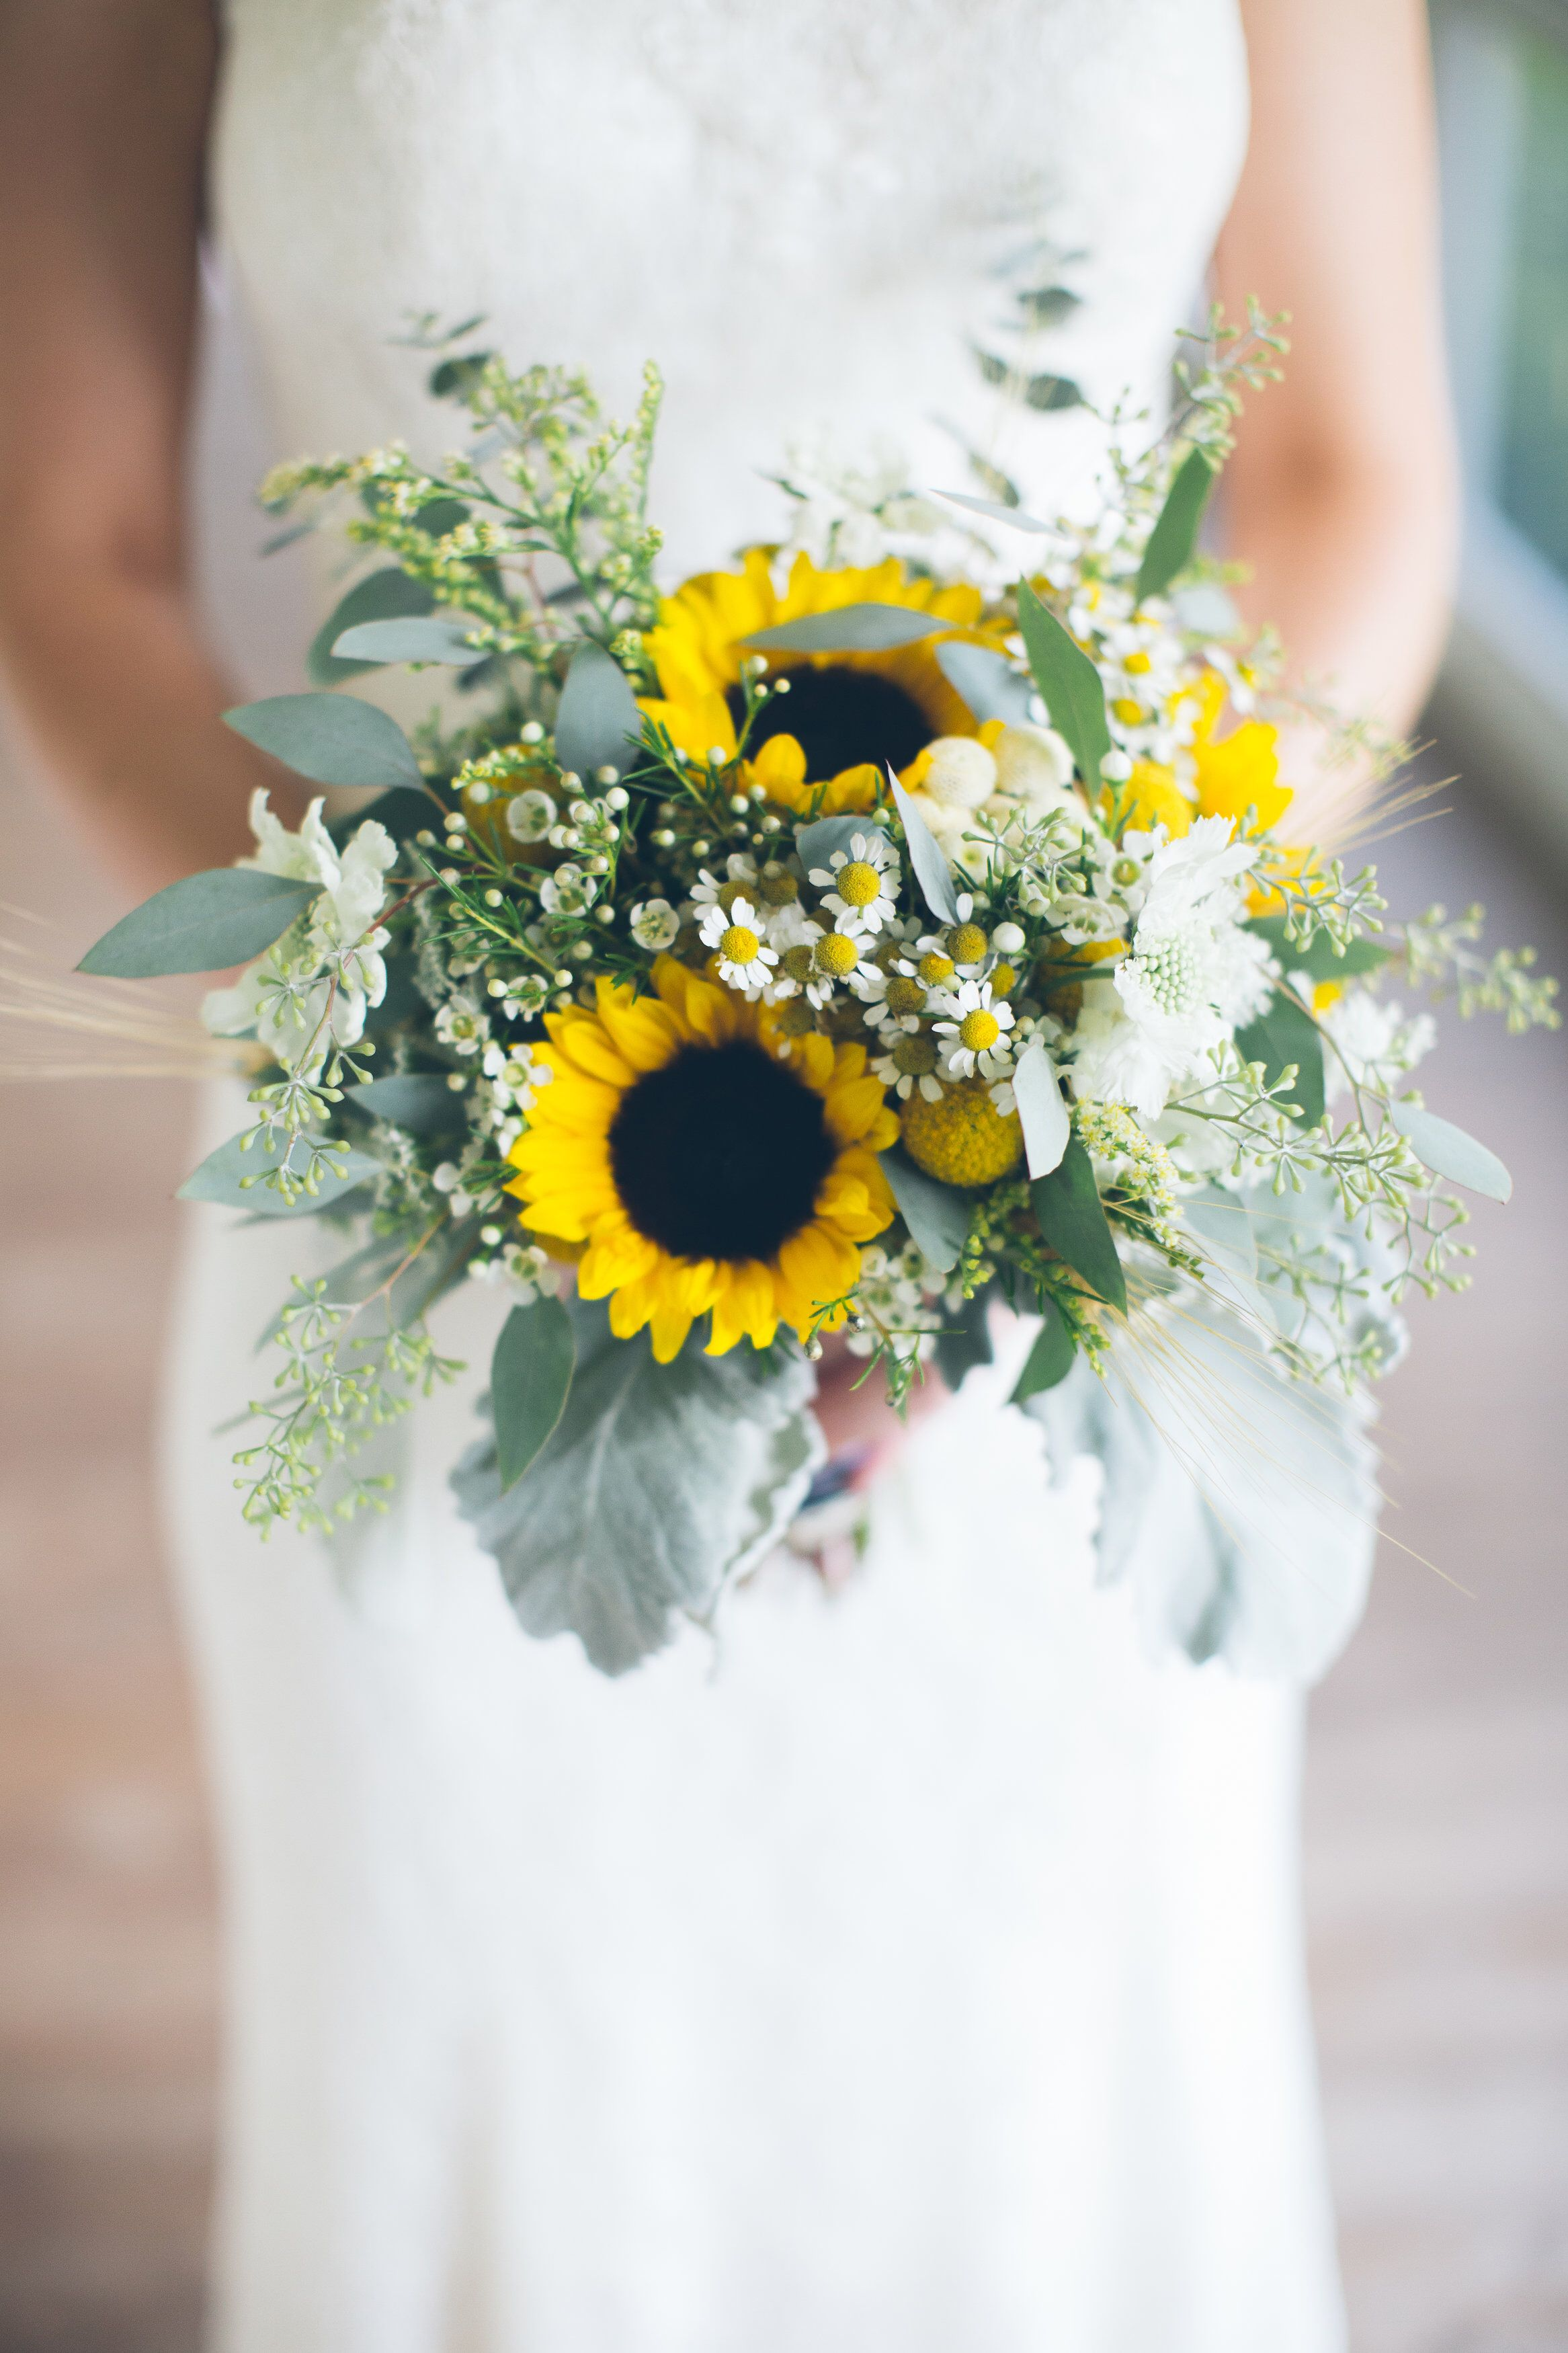 Bridal bouquets sunflower wedding sunflower and wheat dusty miller bridal bouquets sunflower wedding sunflower and wheat dusty miller fever few wax junglespirit Images